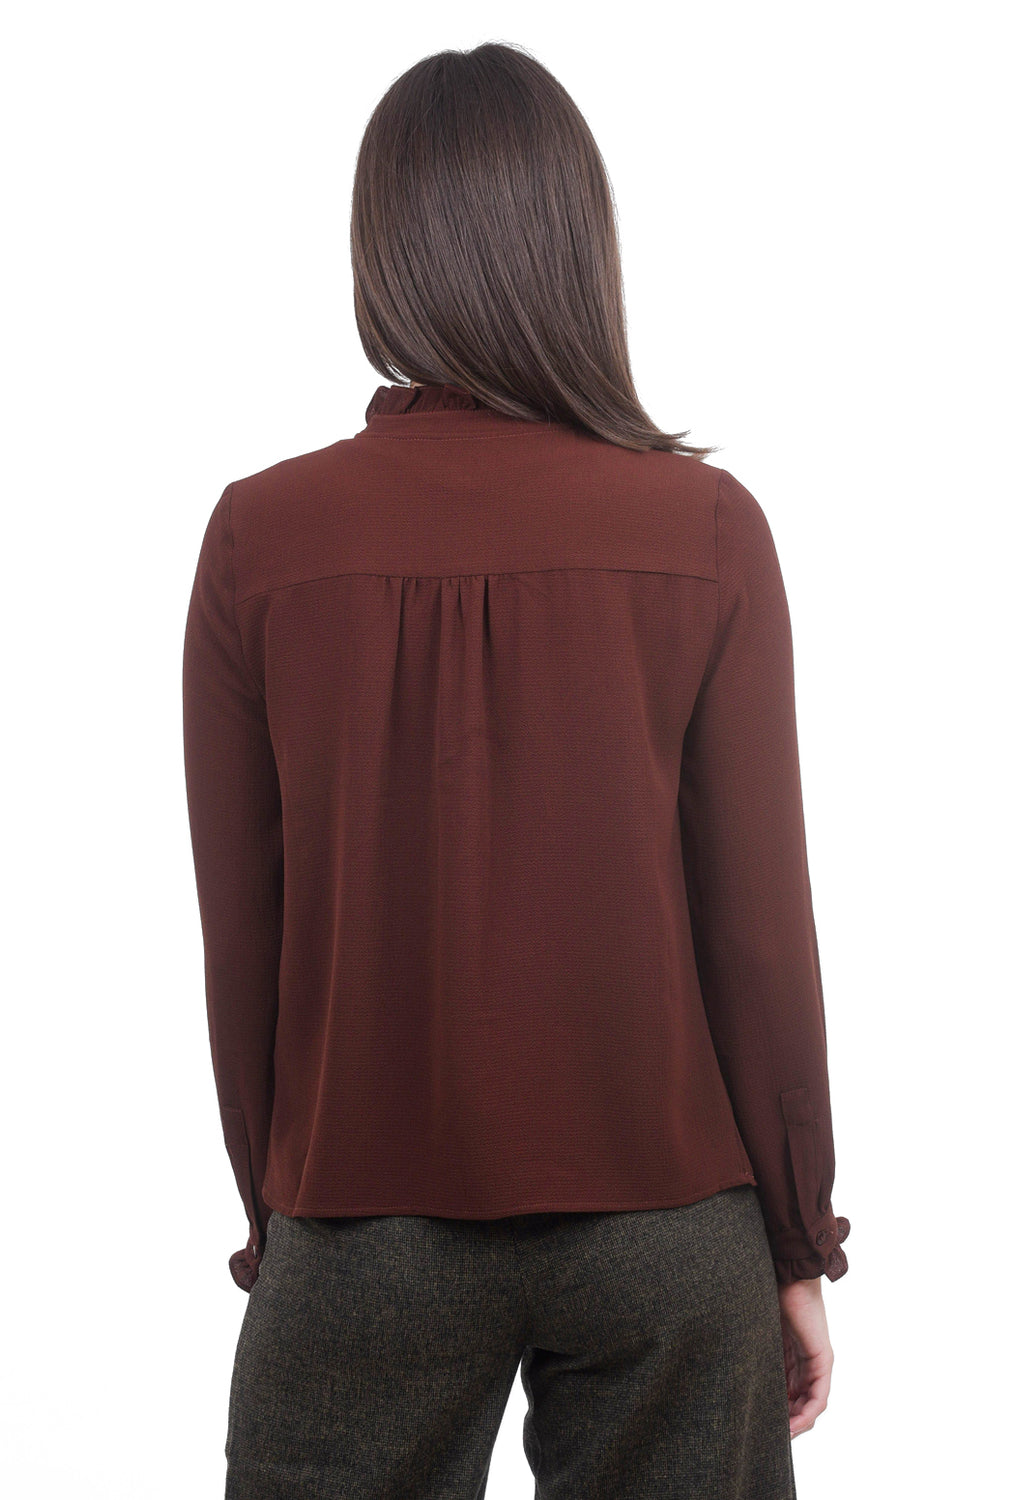 See You Soon Pebbled Chiffon Blouse, Brown